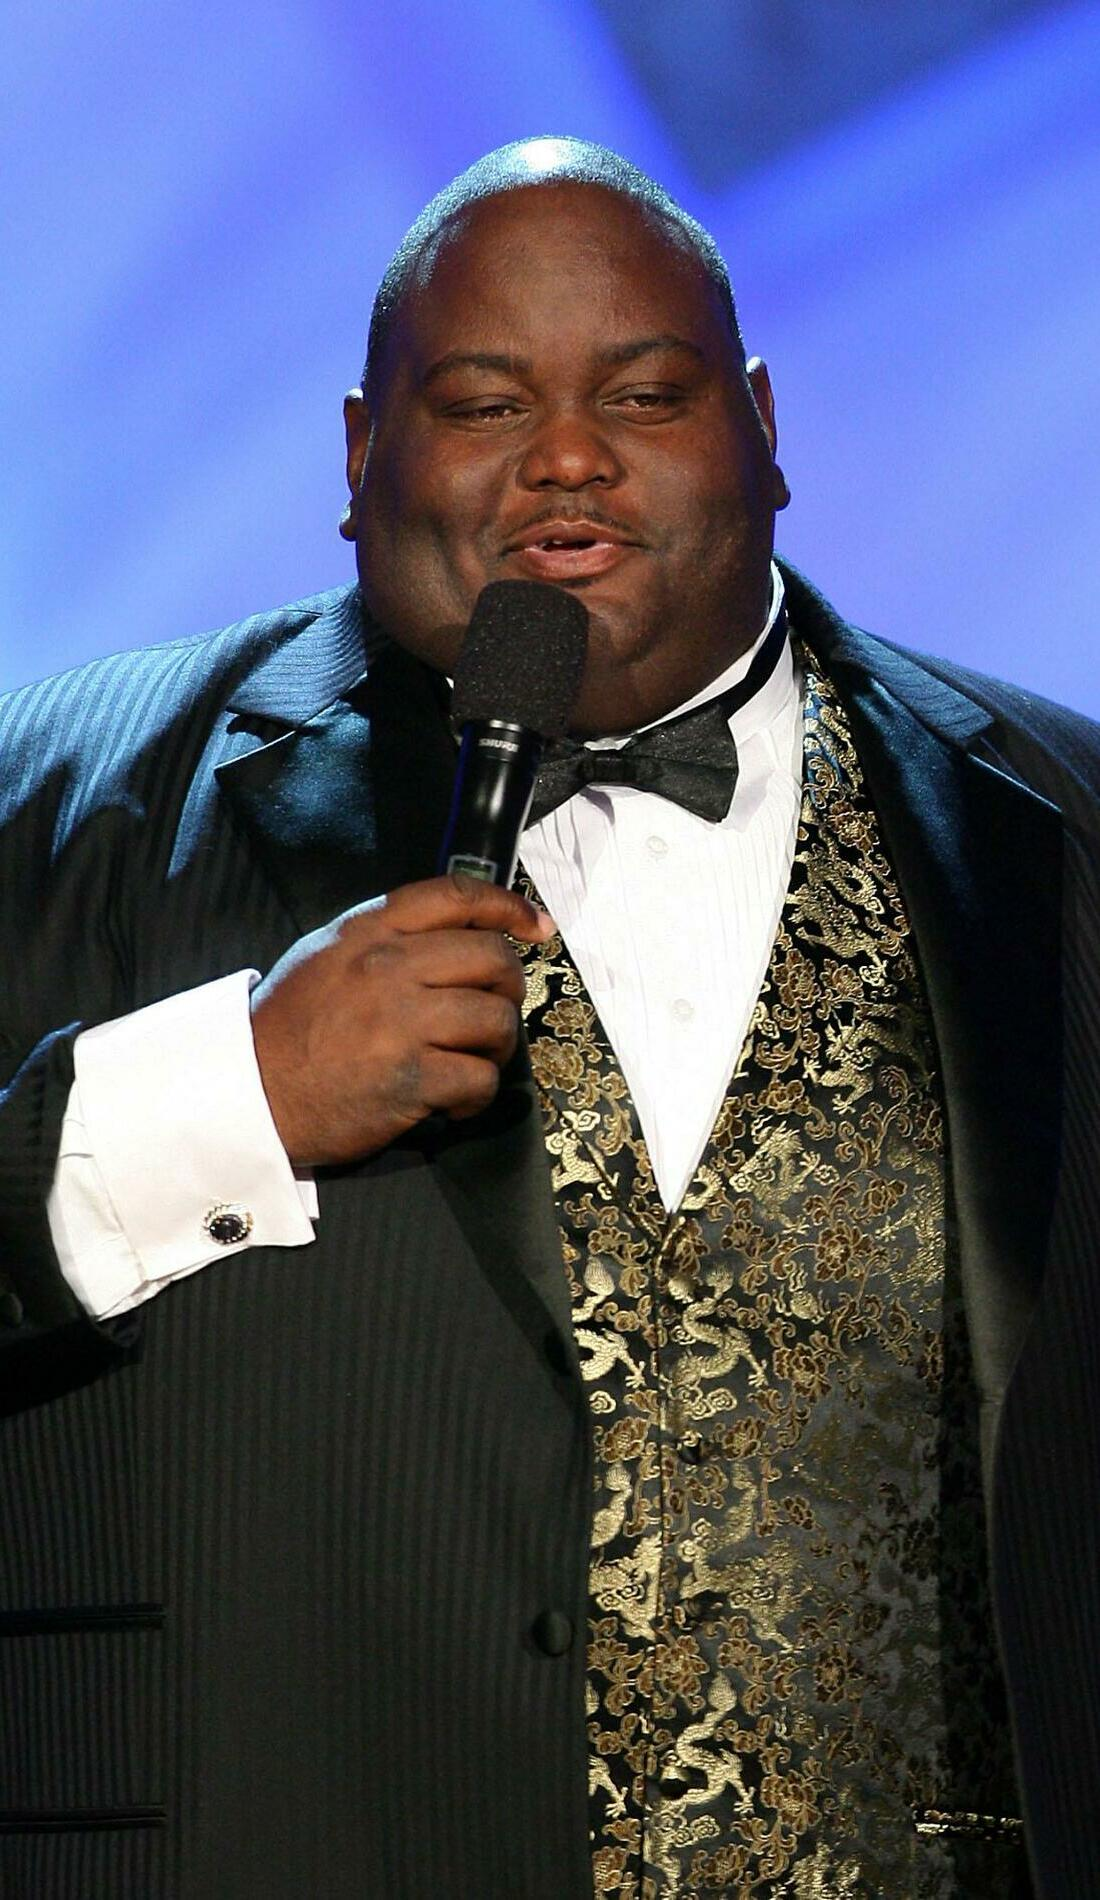 A Lavell Crawford live event